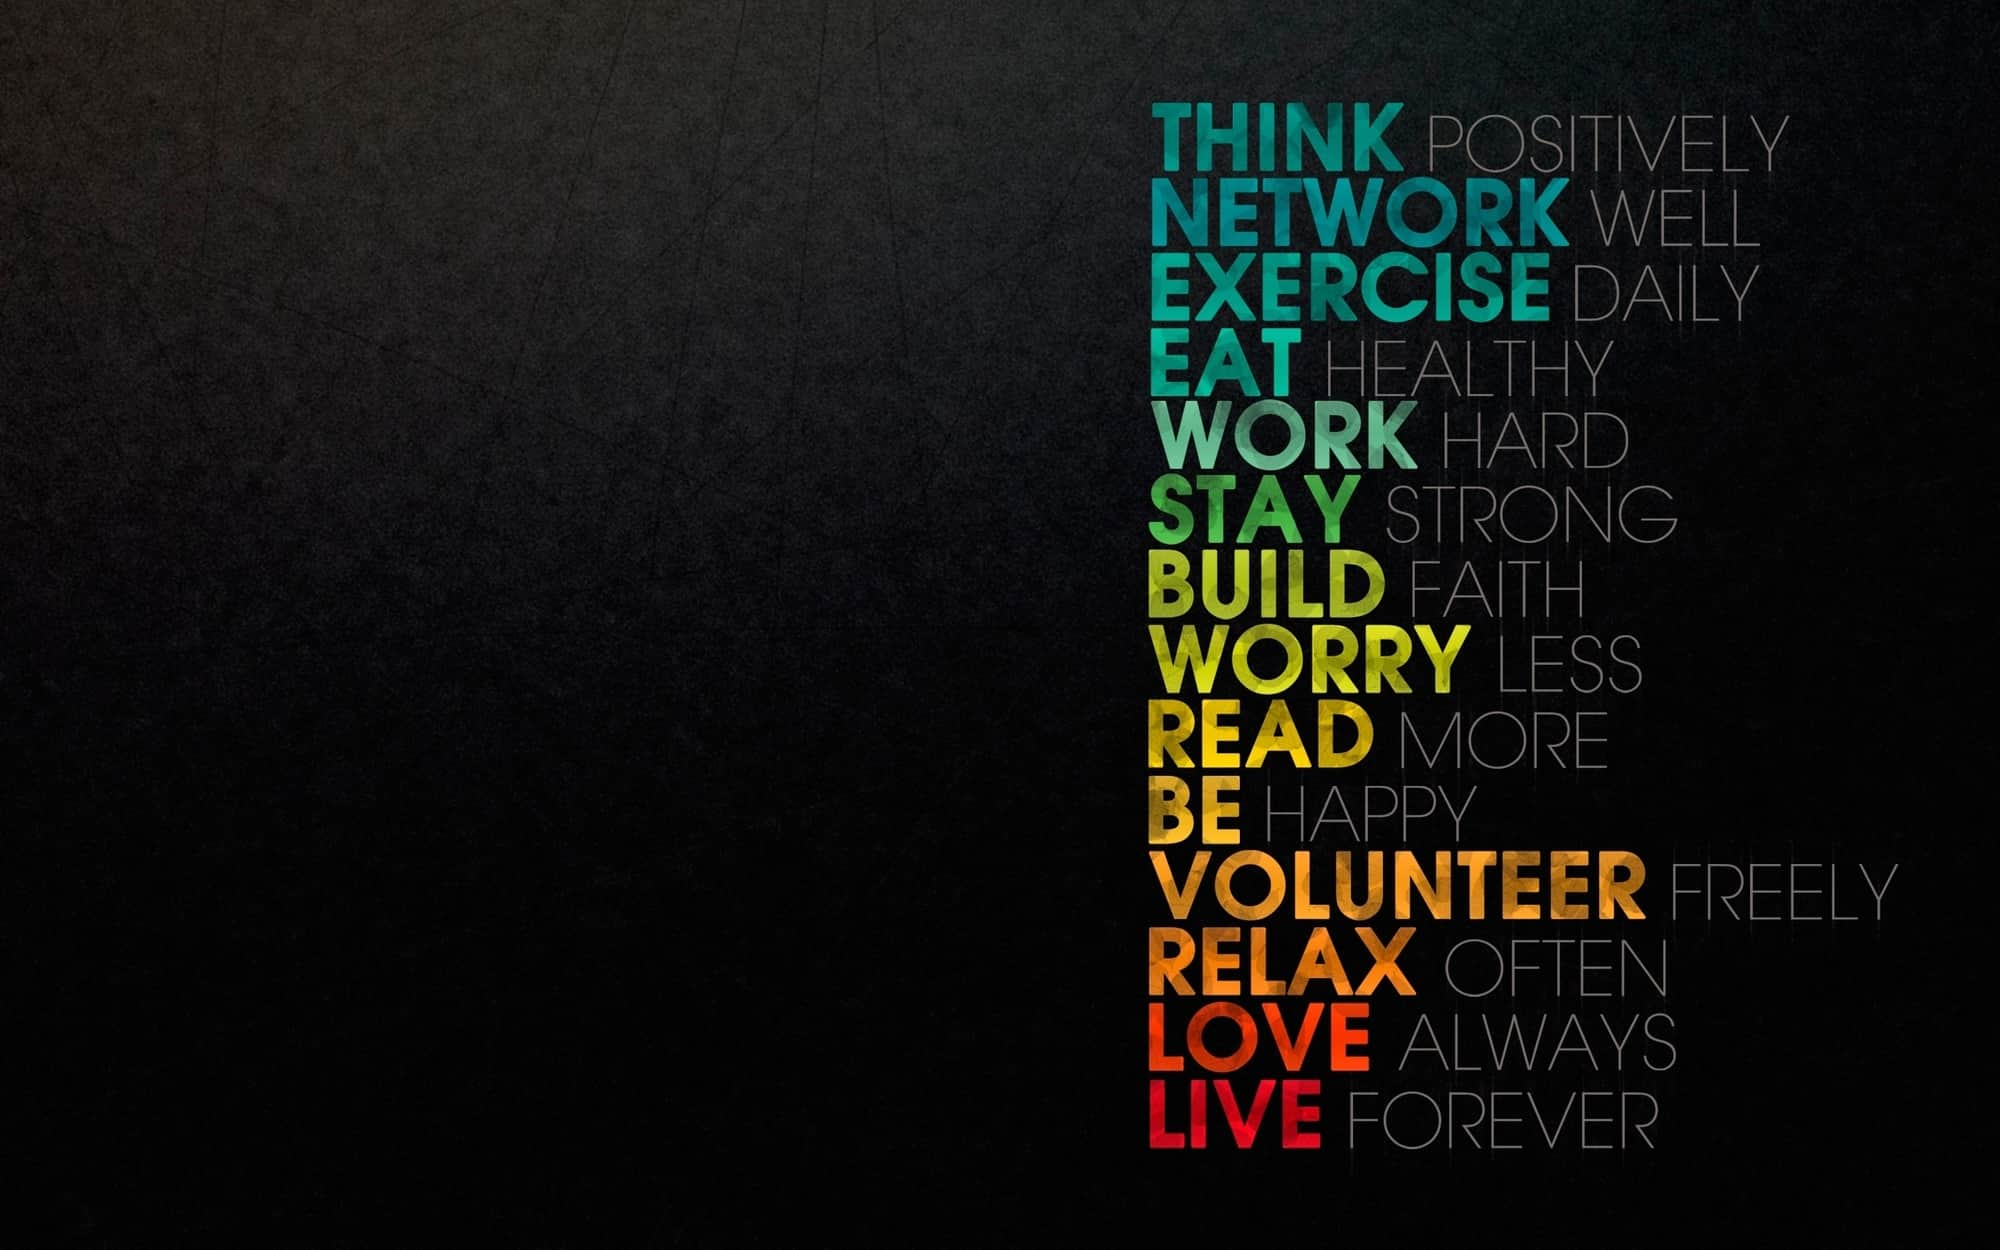 14 Best Motivational Wallpapers For Your Computer Wealthy Gorilla